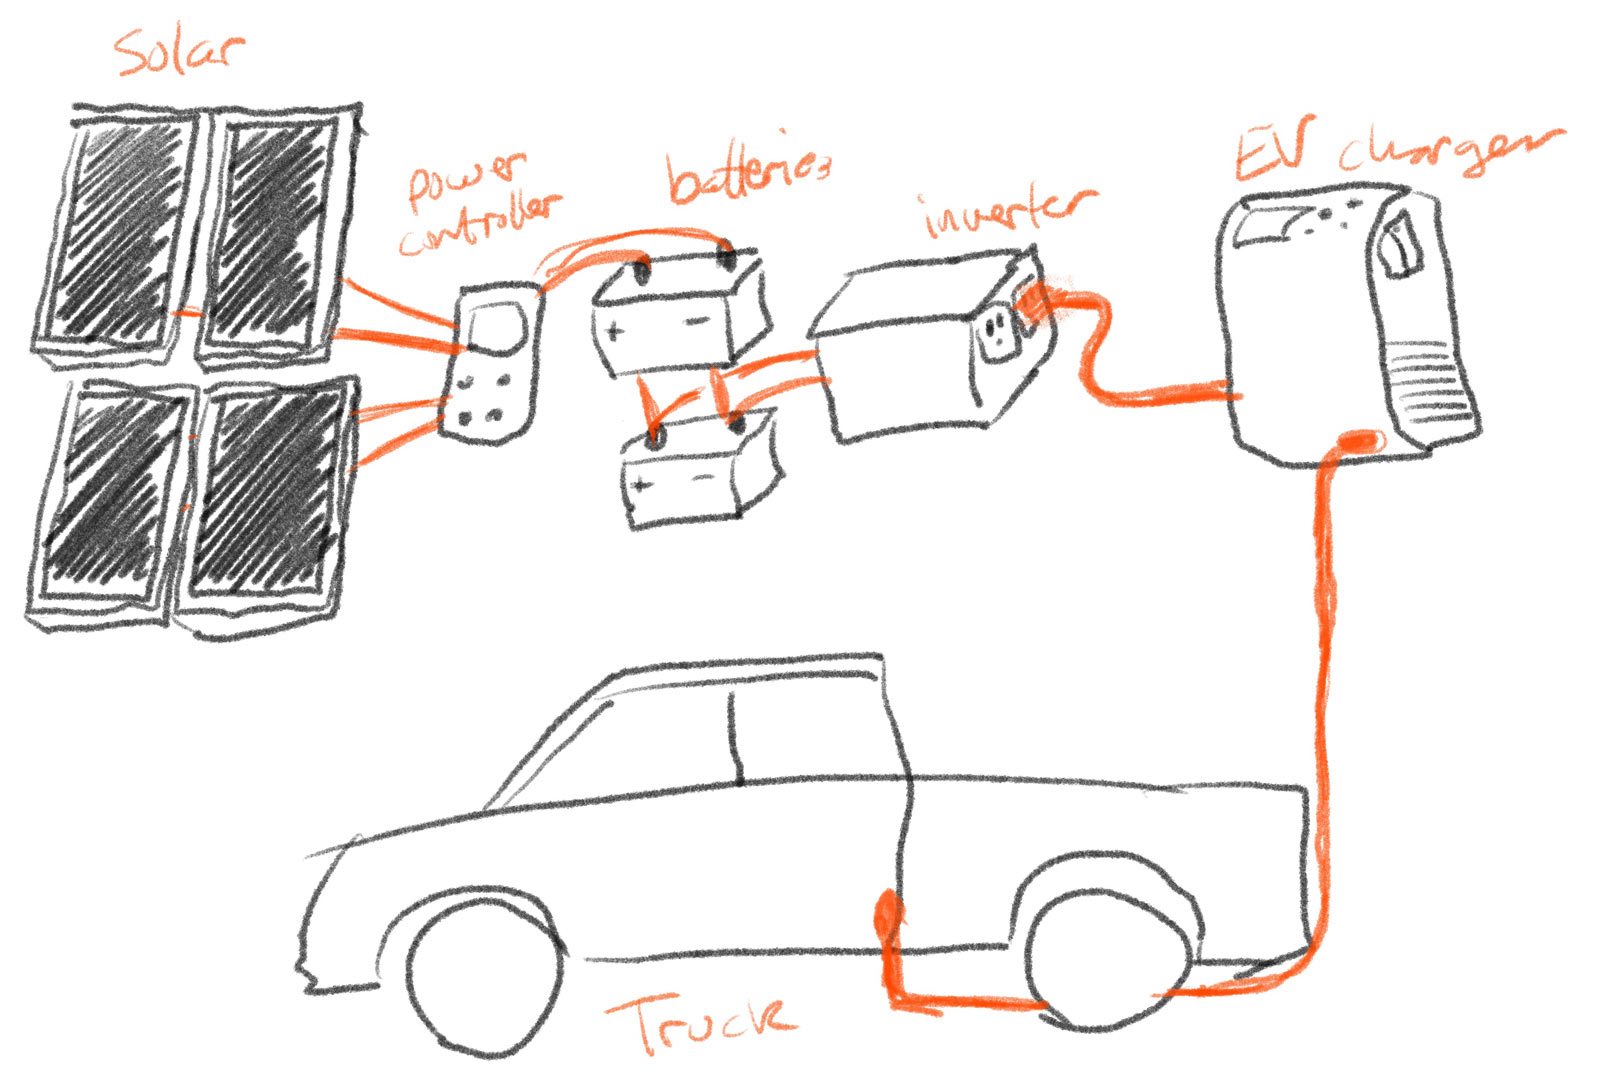 wiring diagram for how to charge an electric vehicle with solar panels